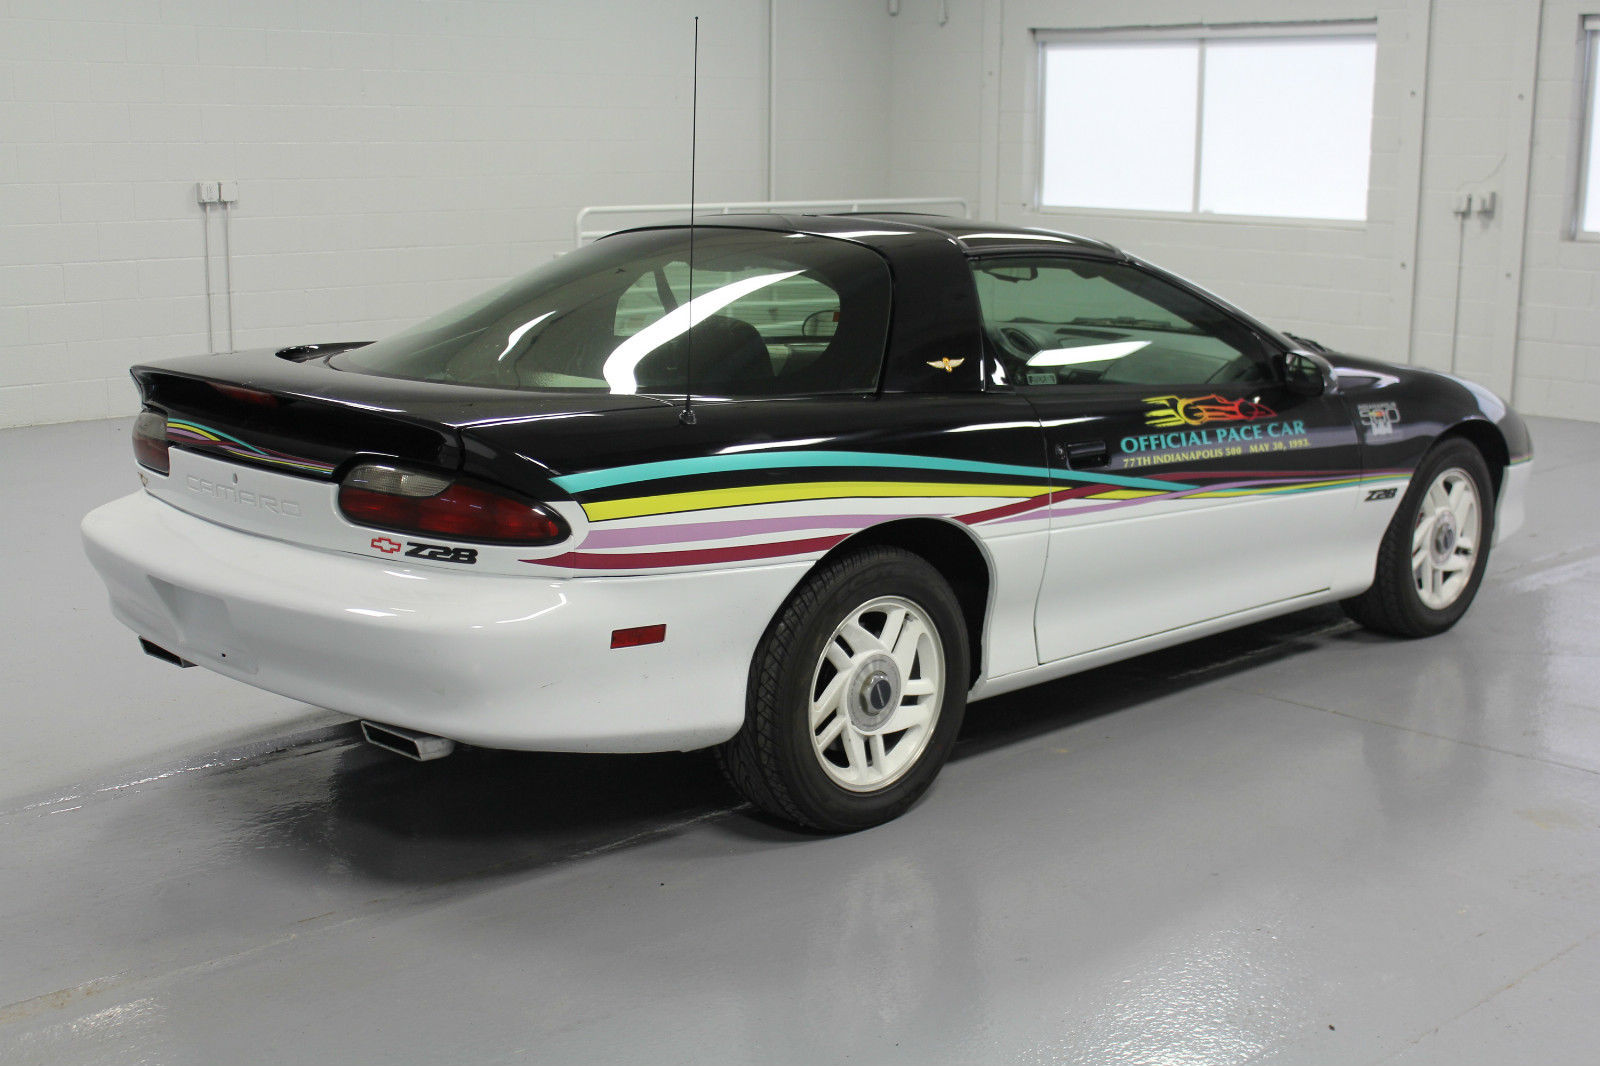 1993 Chevrolet Camaro Z28 Indy 500 Pace Car Edition 108